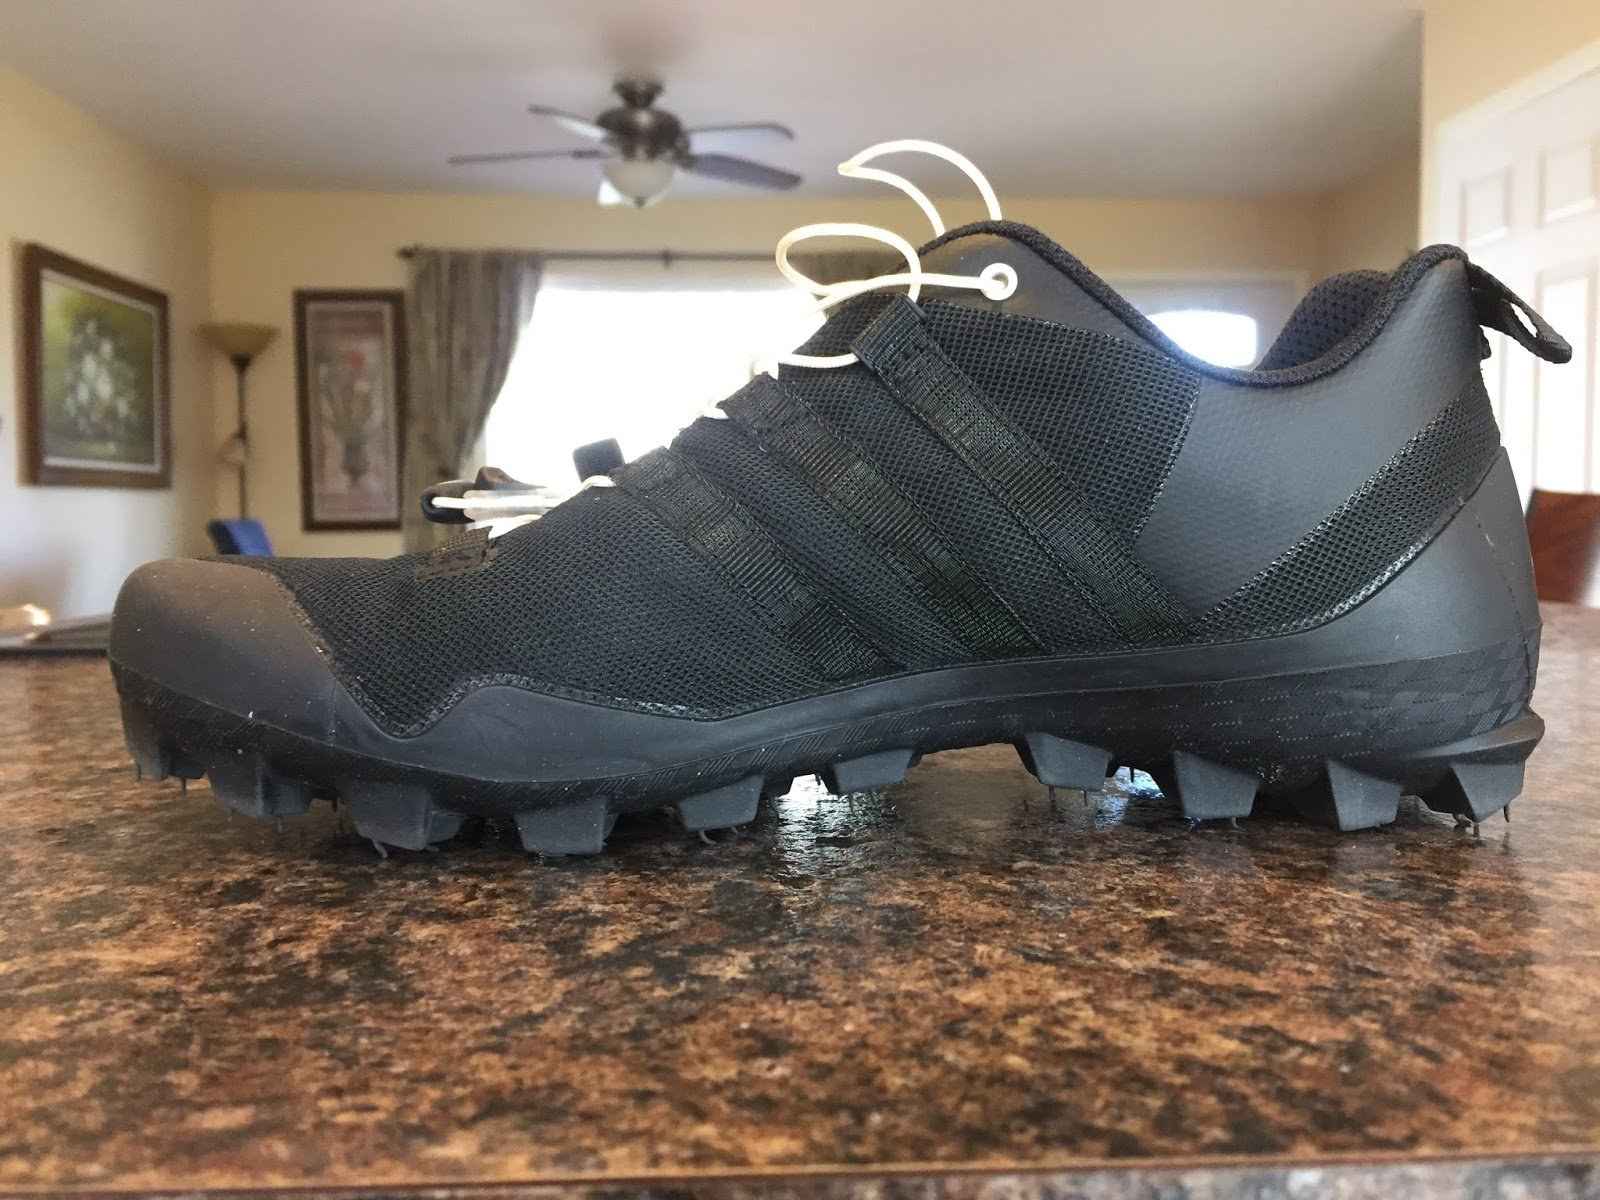 6f1e6f304f2f Road Trail Run  adidas Terrex X King - Taking Traction and ...